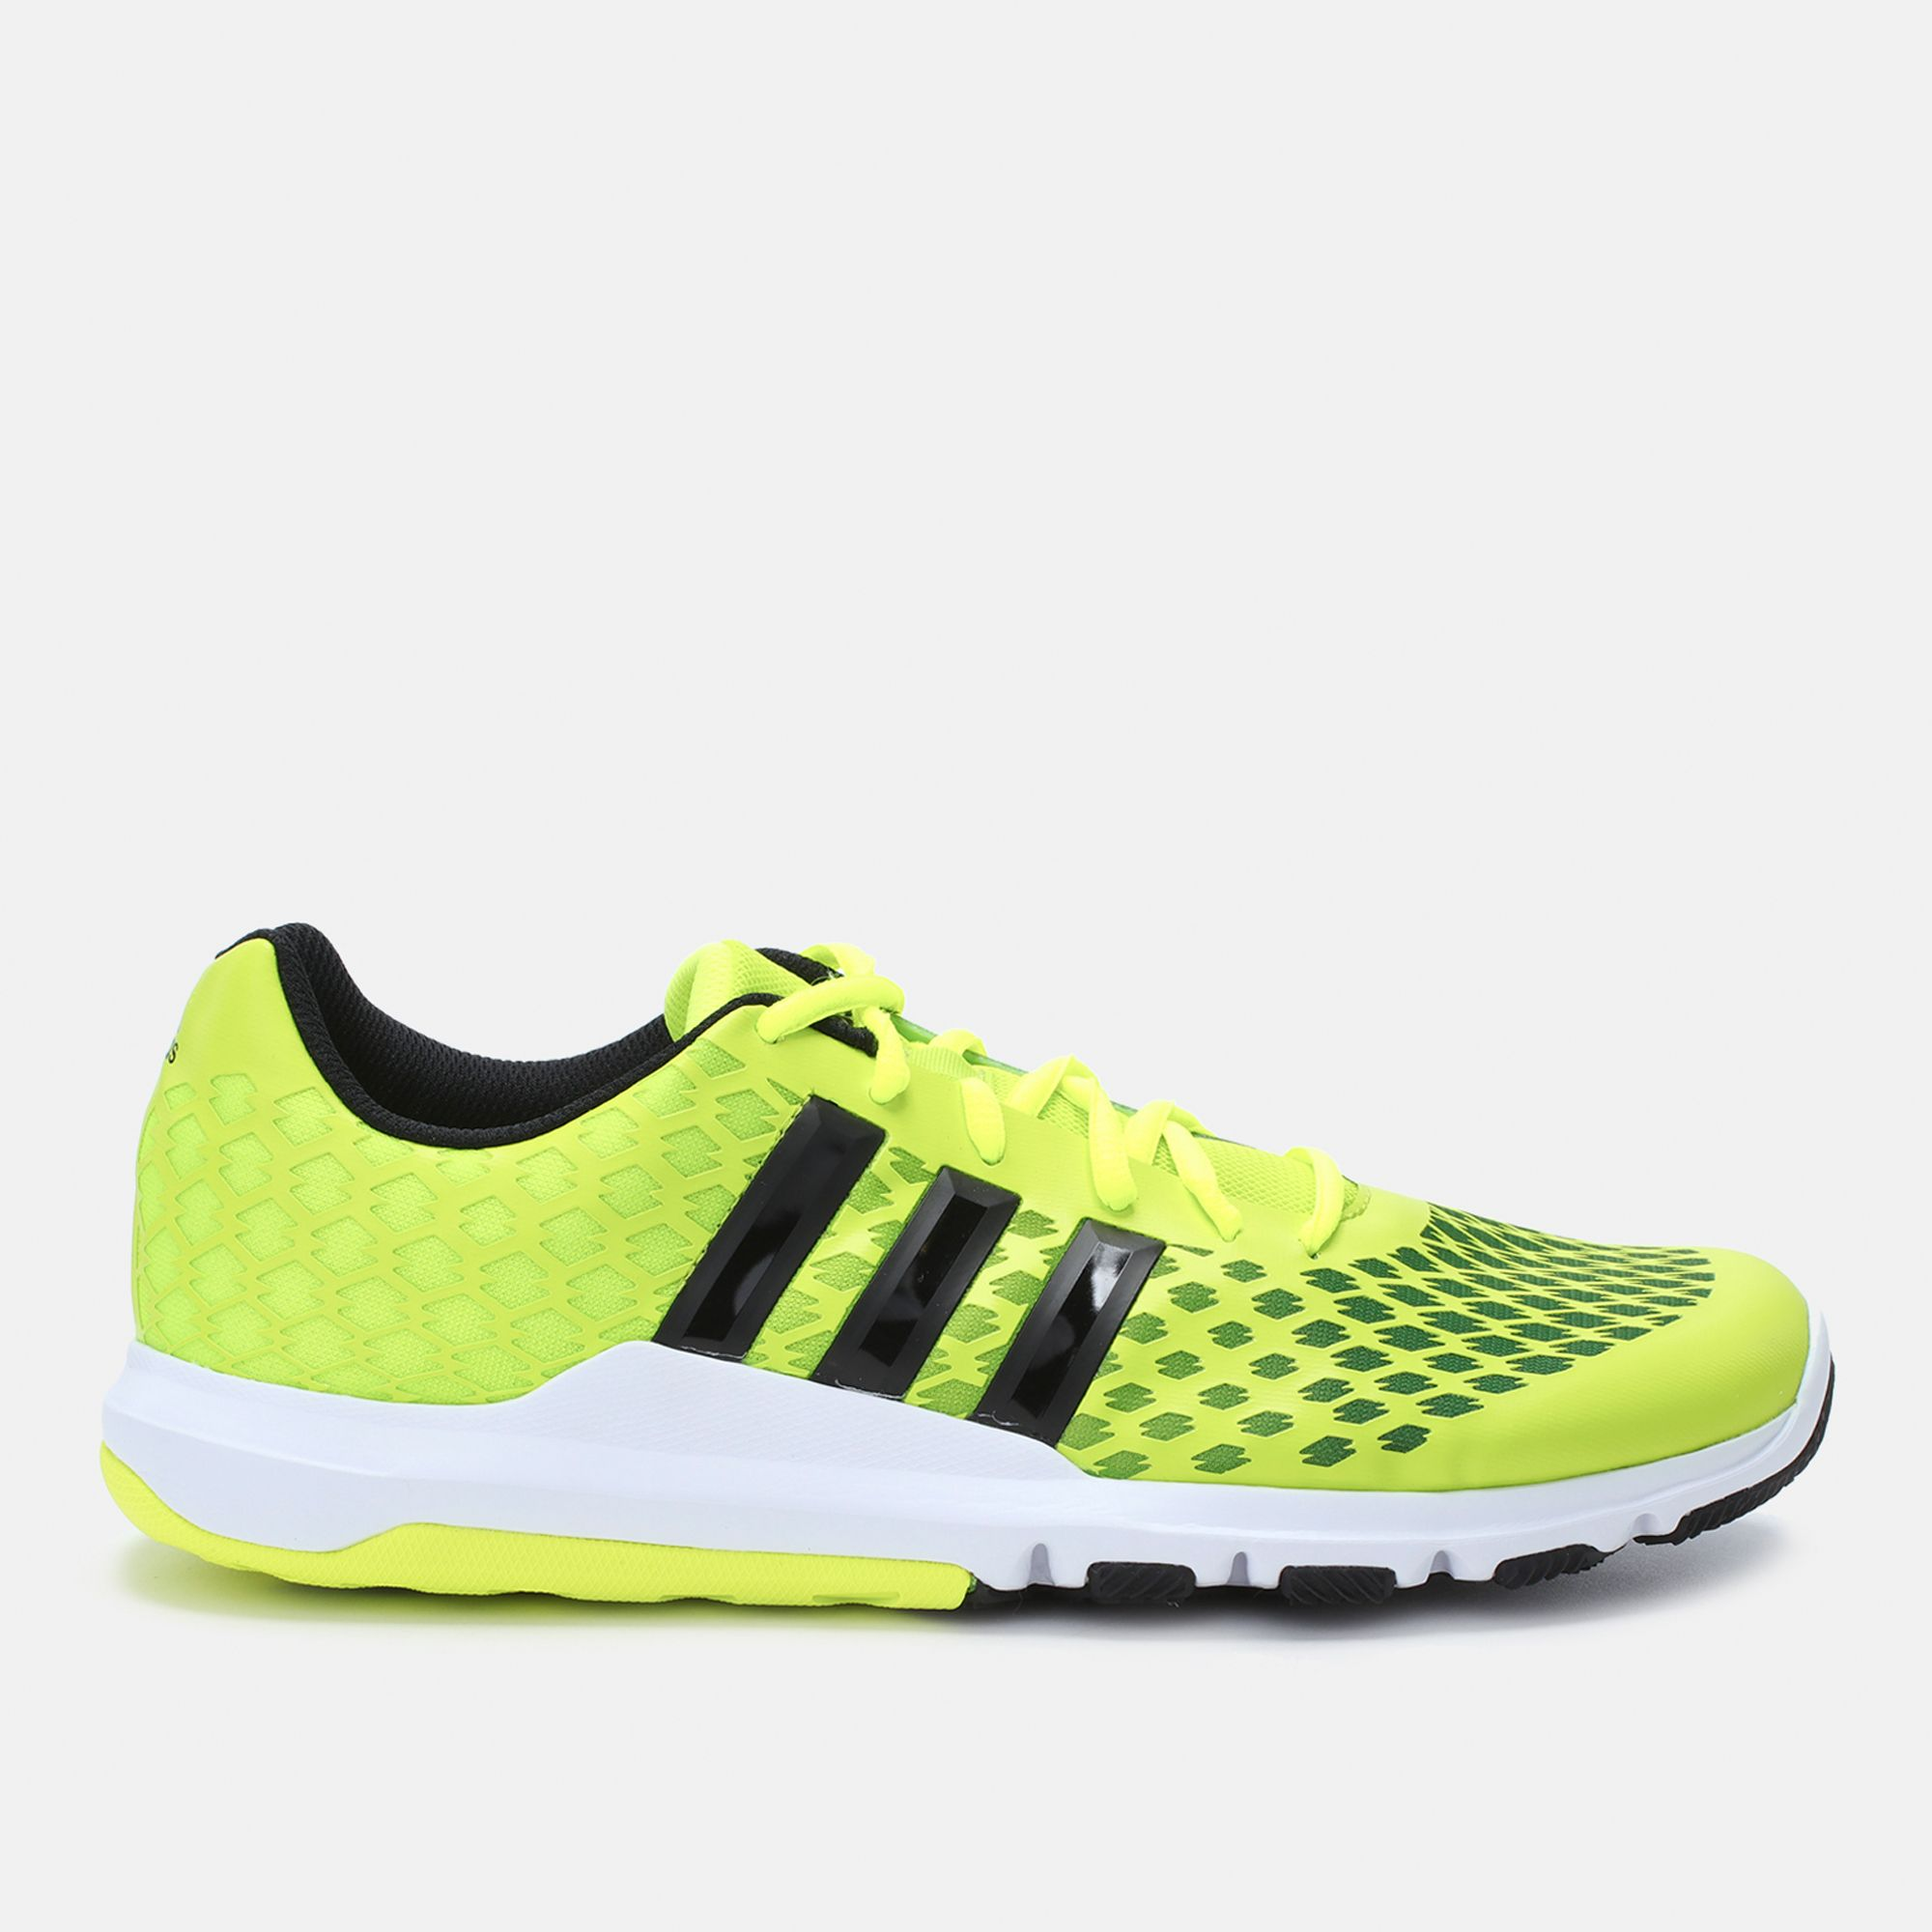 sneakers for cheap 4ad6e d6211 Shop Green adidas Adipure Primo Shoe for Mens by adidas   SSS